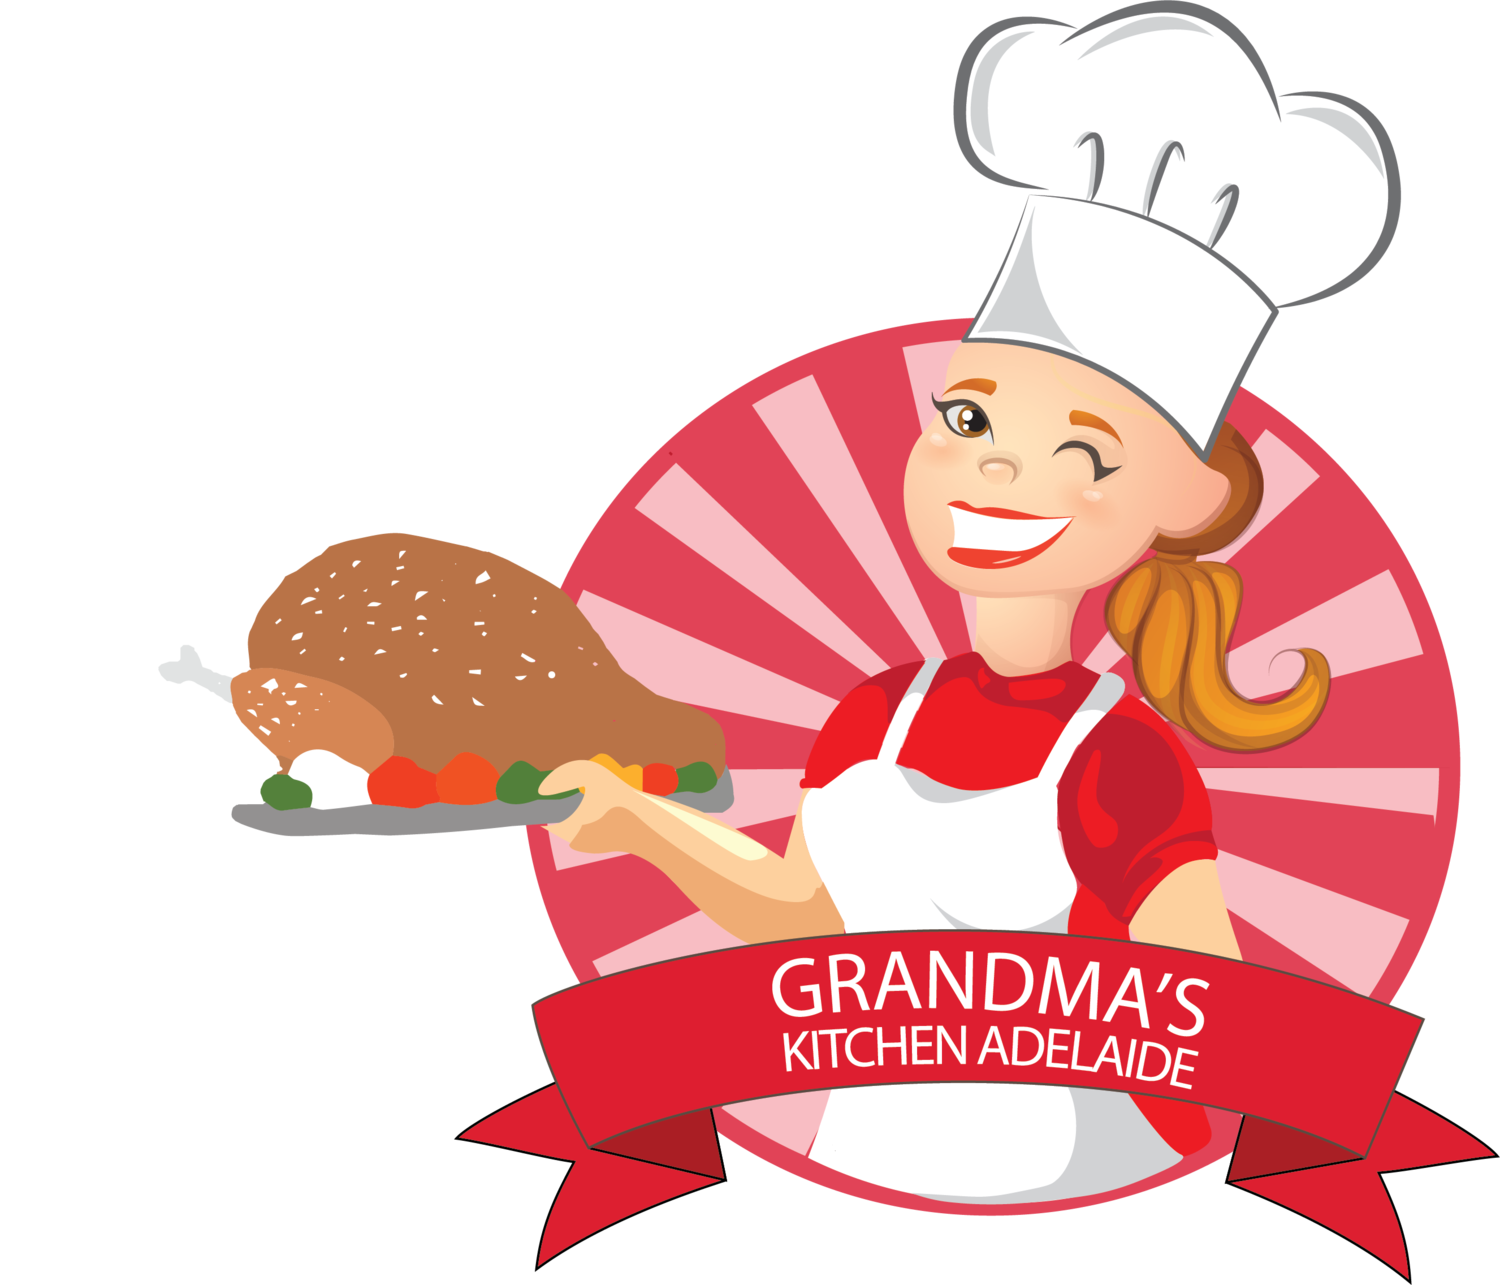 Grandma s kitchen adelaide. Cooking clipart home cooked meal